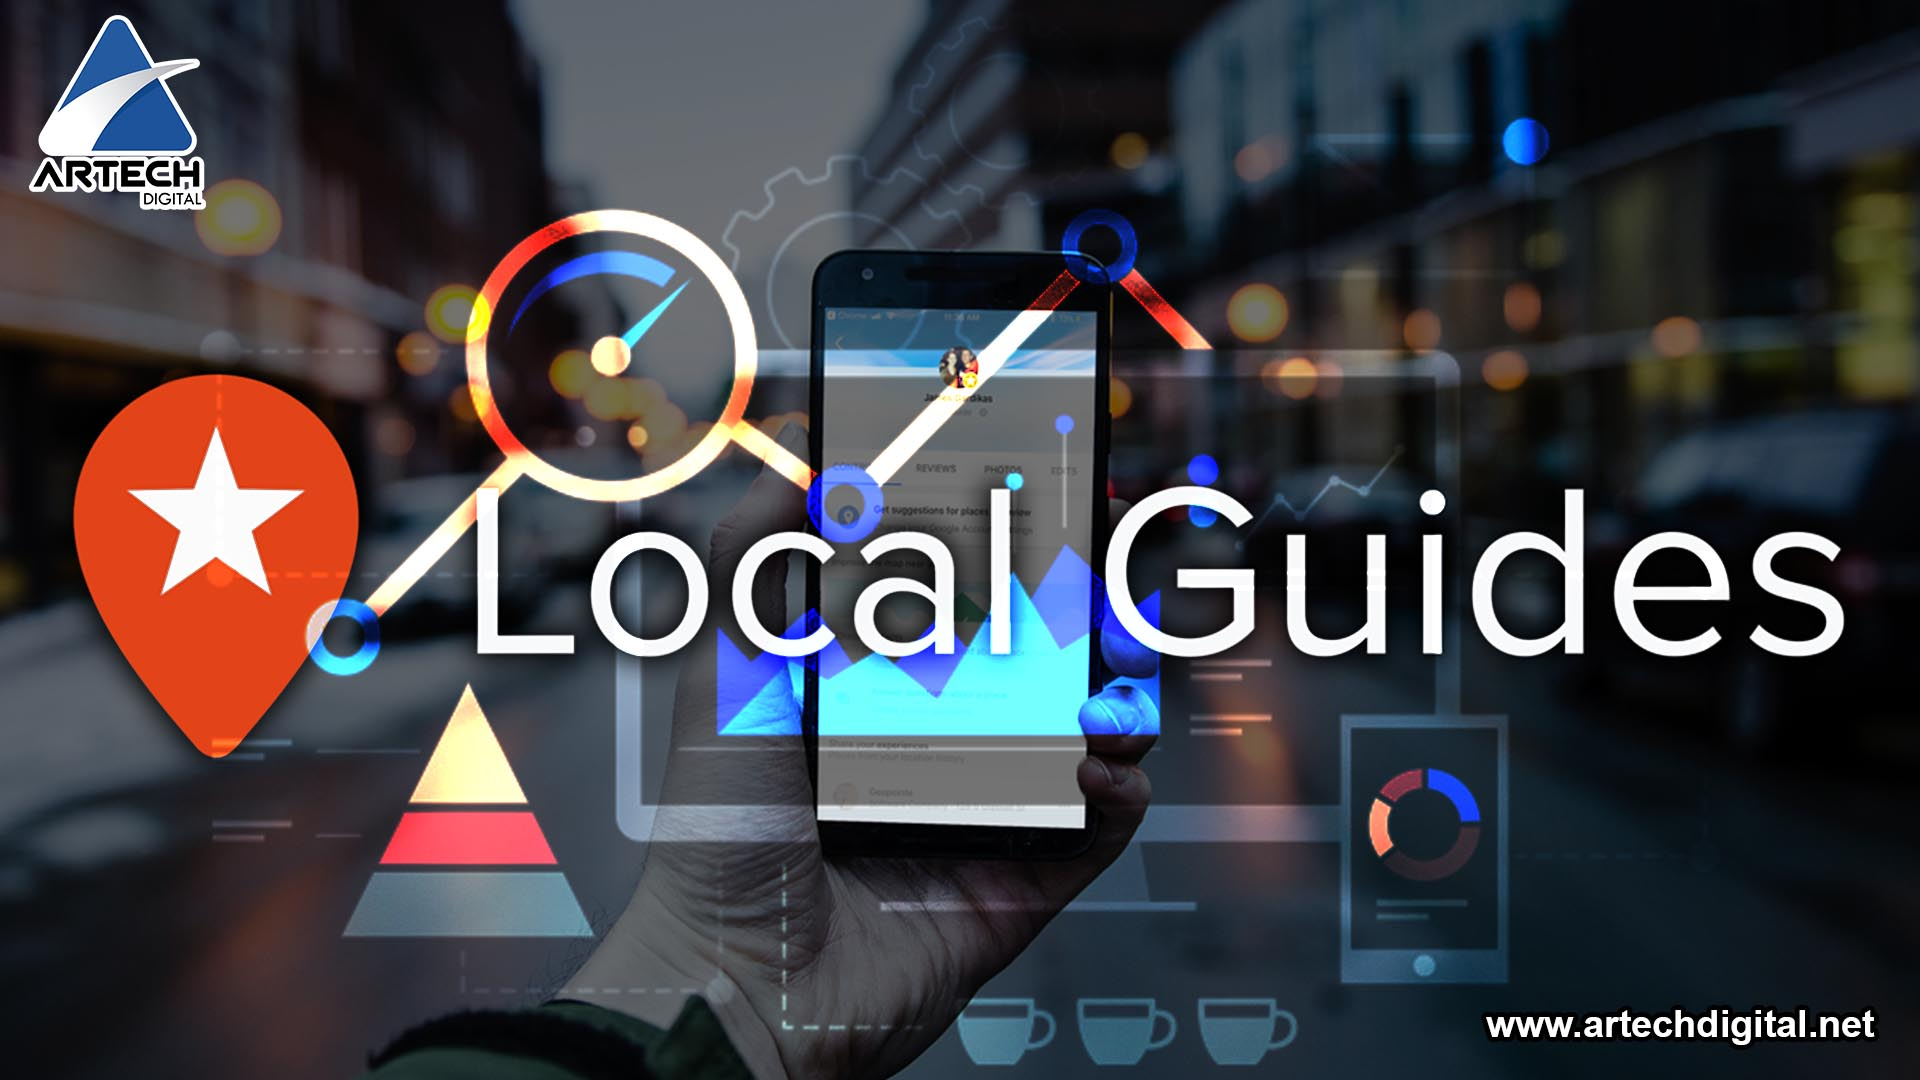 Local Guides - Artech Digital